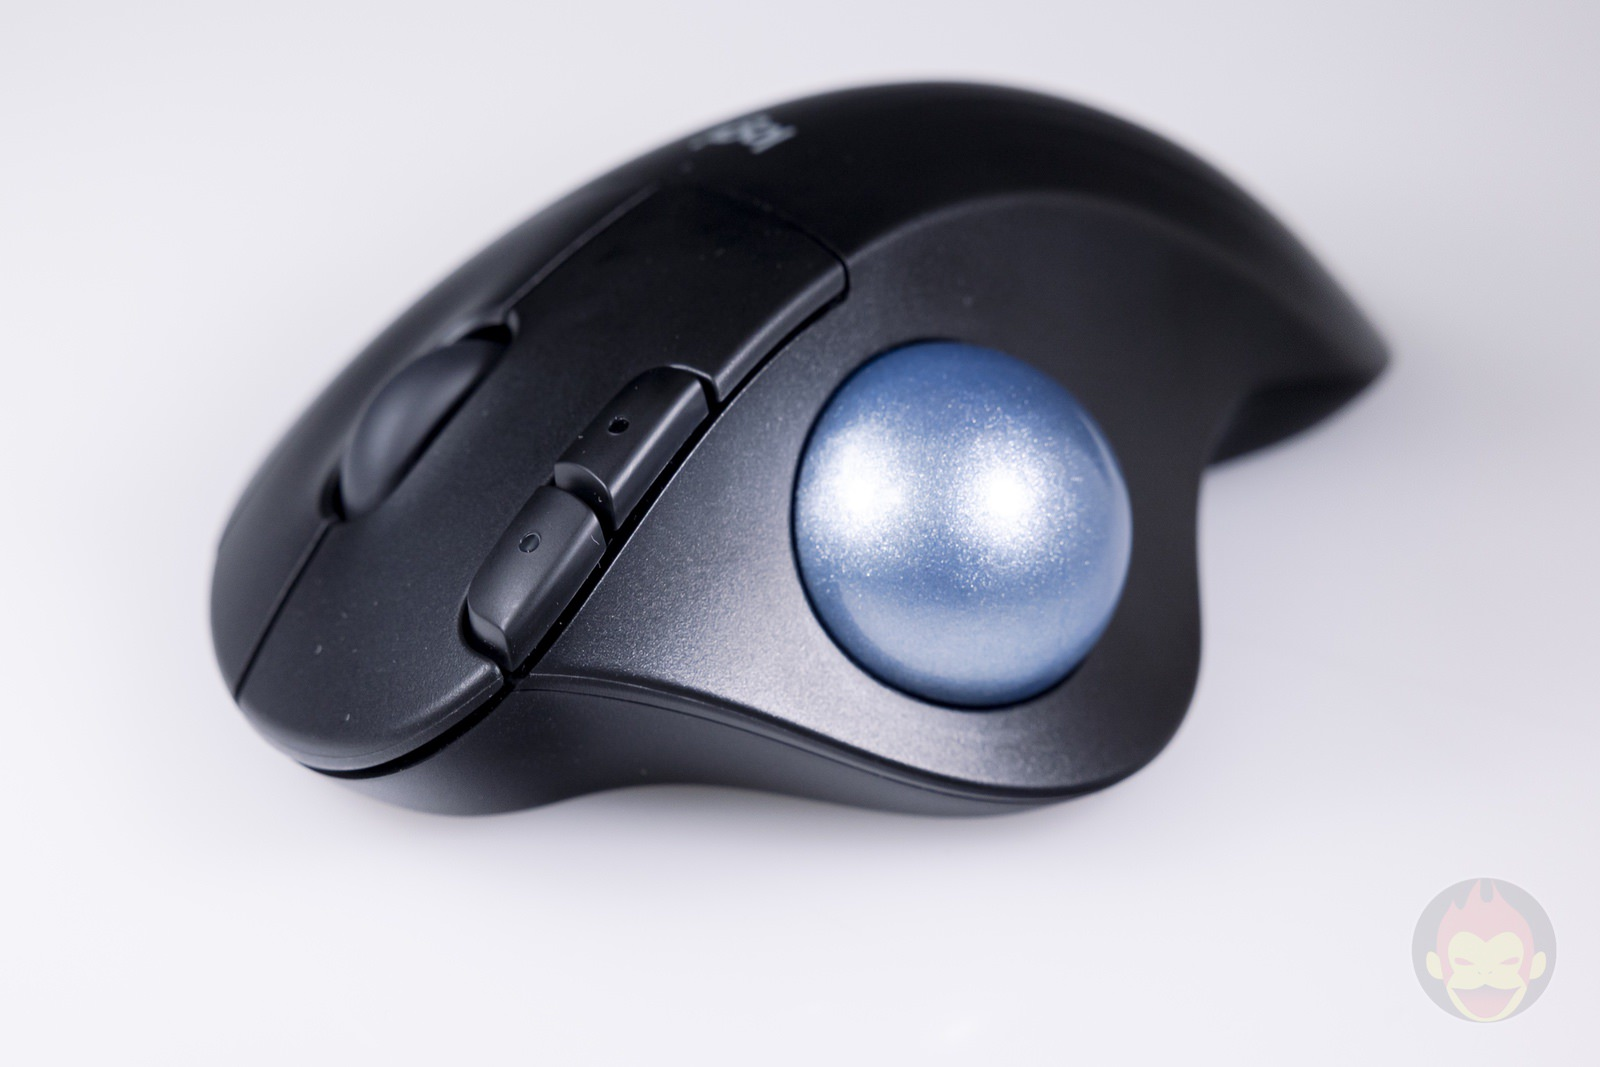 Logicool ERGO M575S Trackball Hands on 04